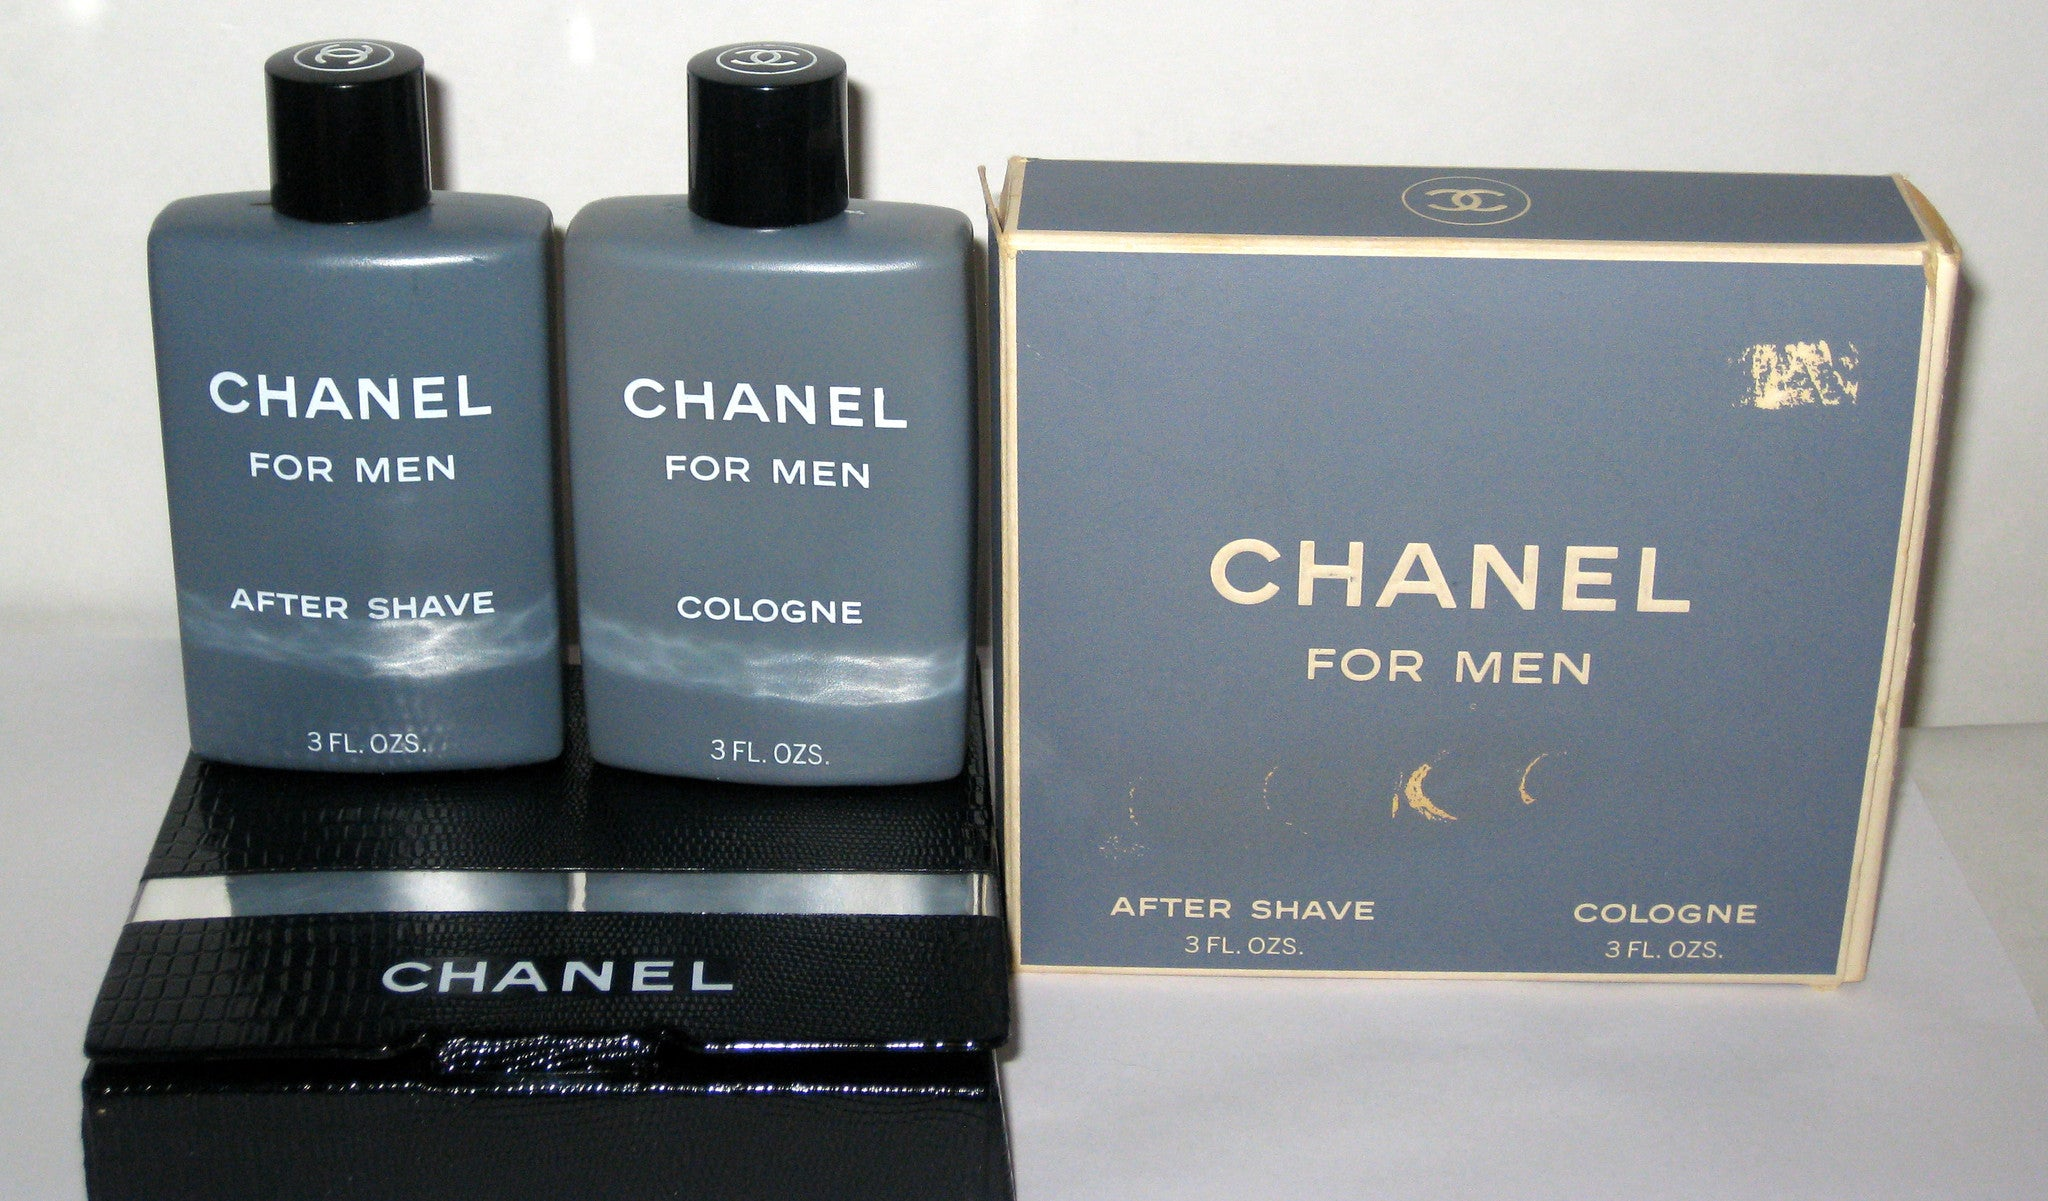 Chanel For Men Cologne & After Shave